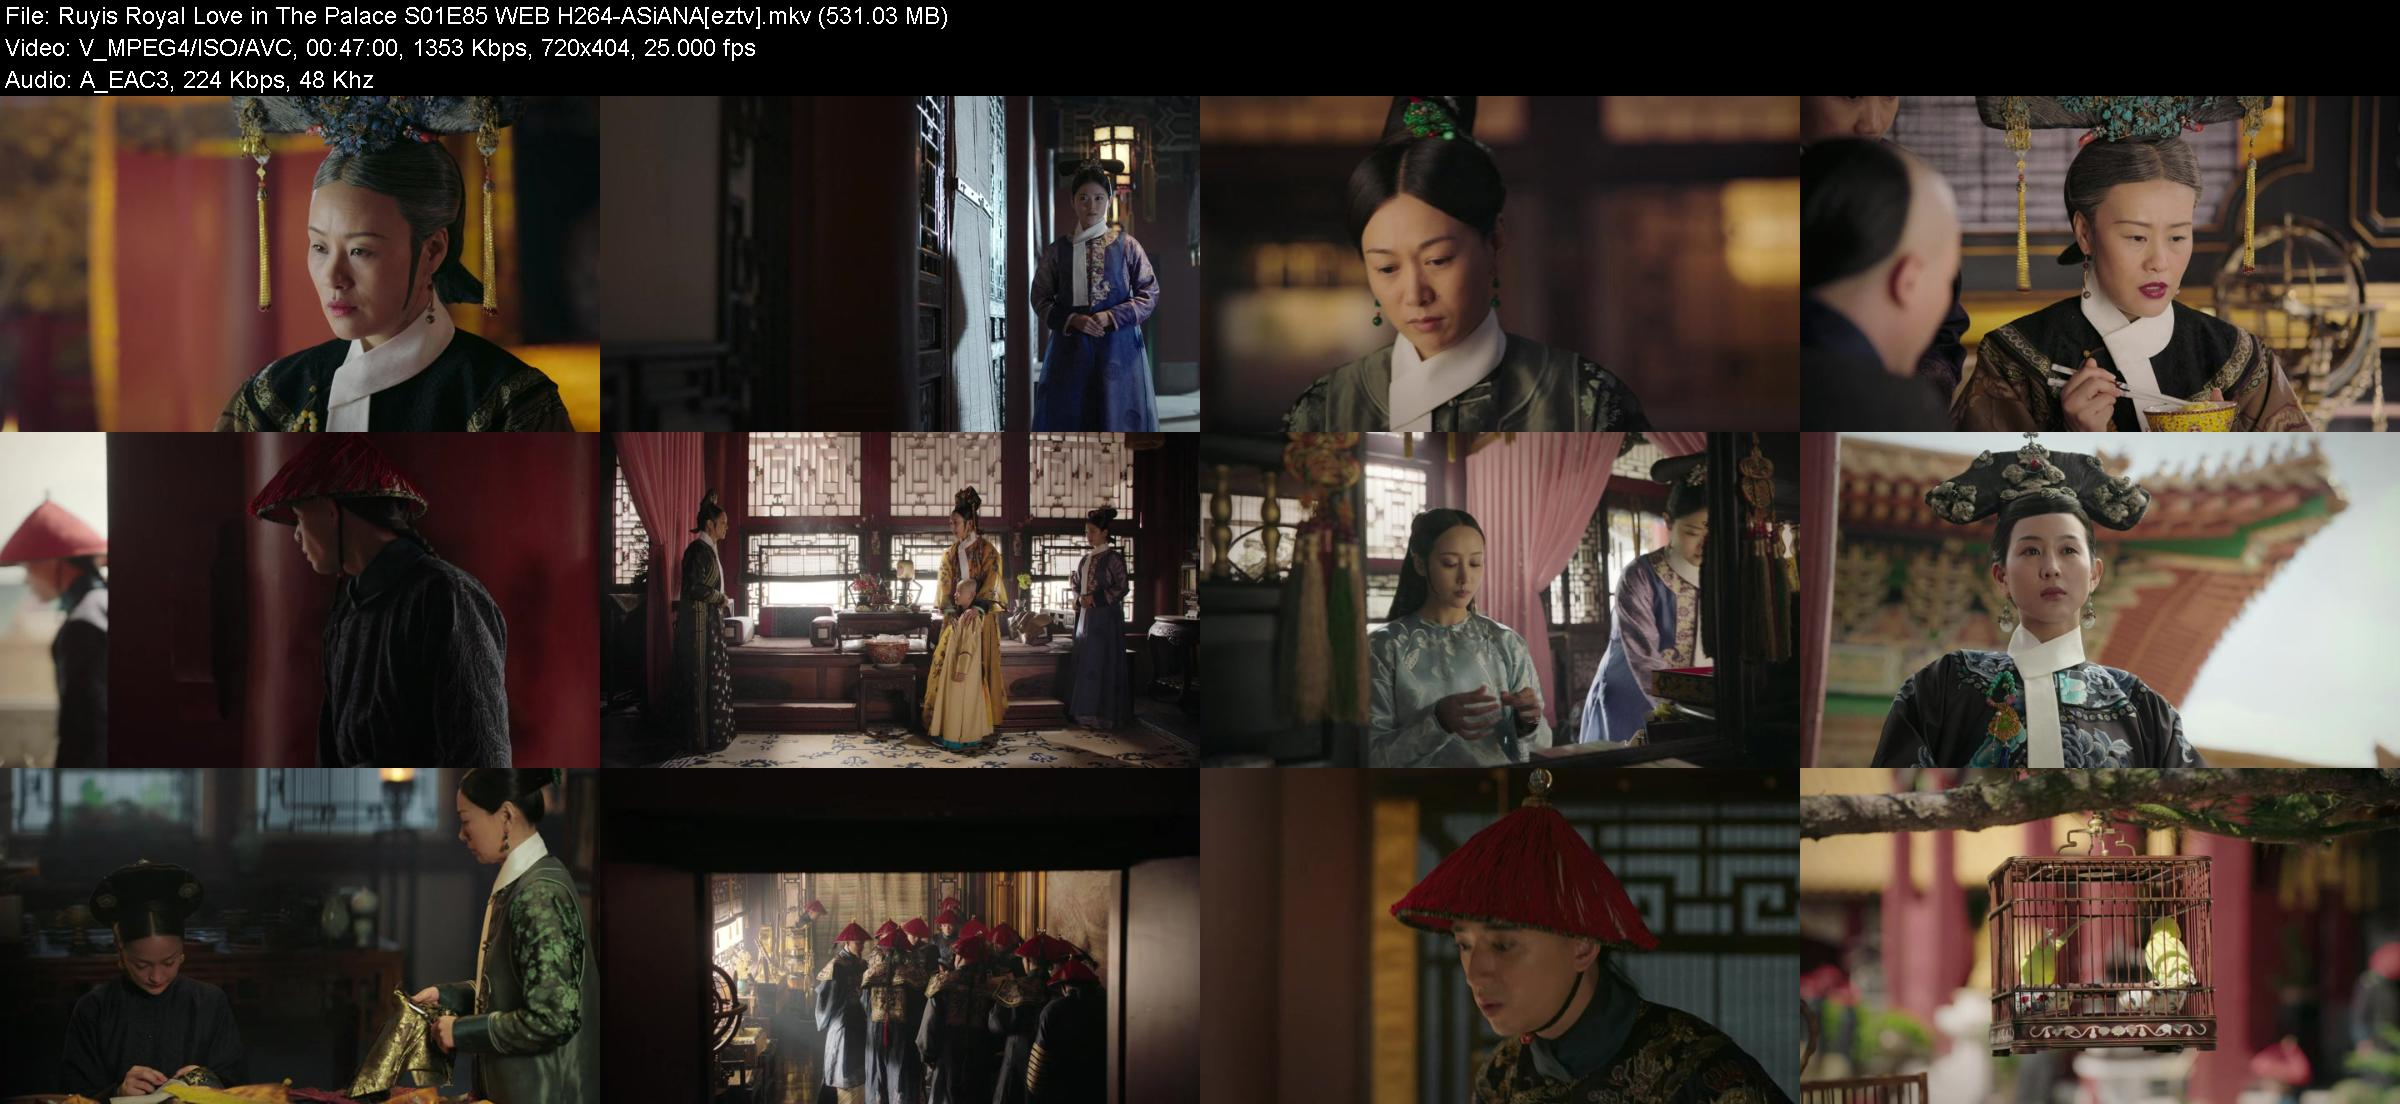 Ruyis Royal Love in The Palace S01E85 WEB H264-ASiANA